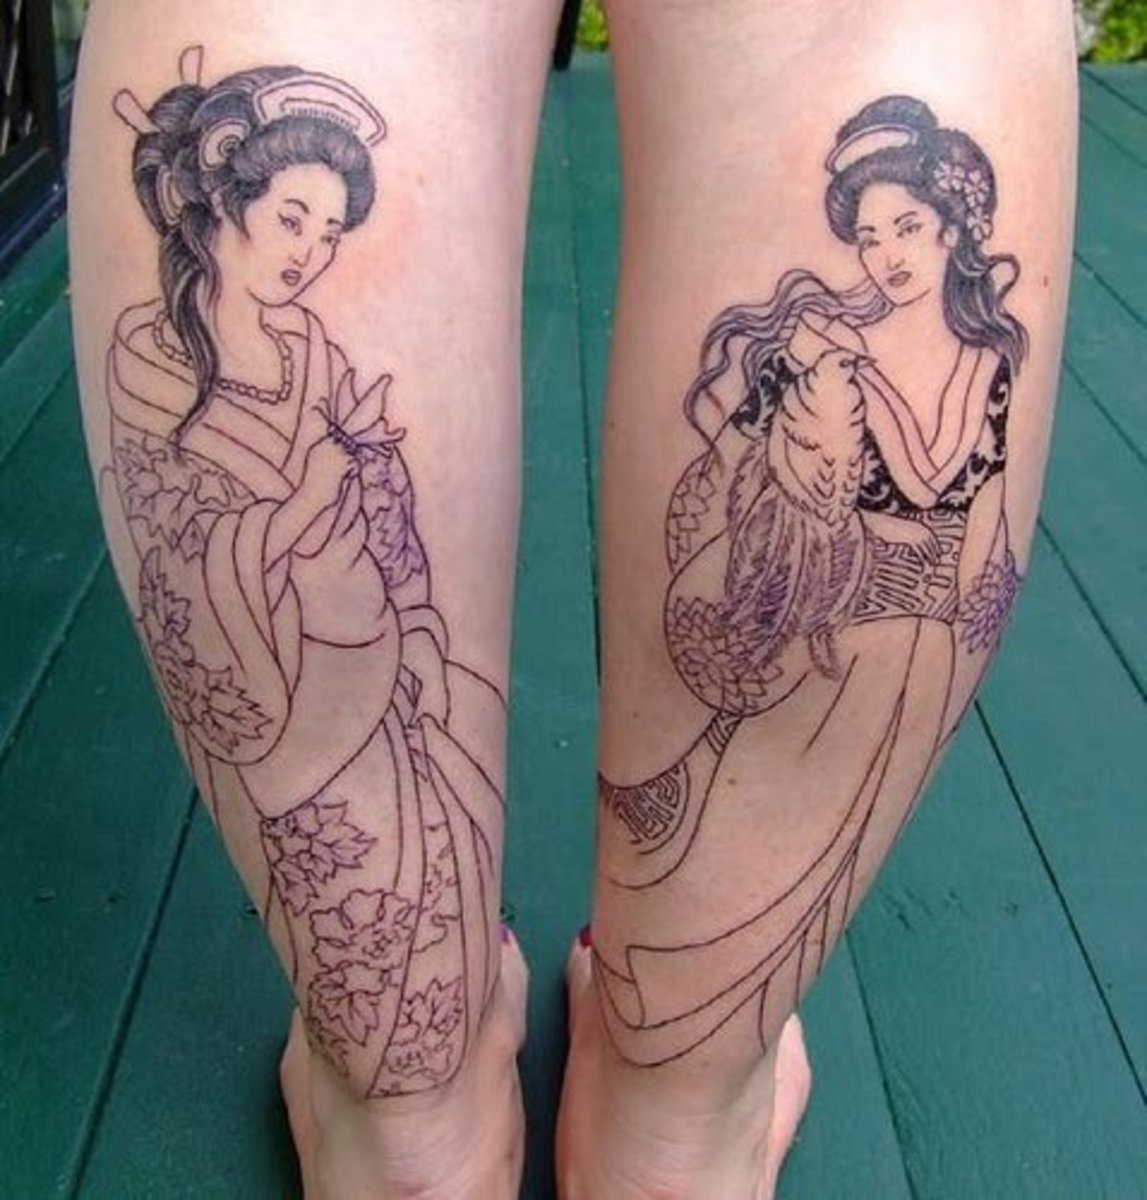 Calf geisha tattoo.